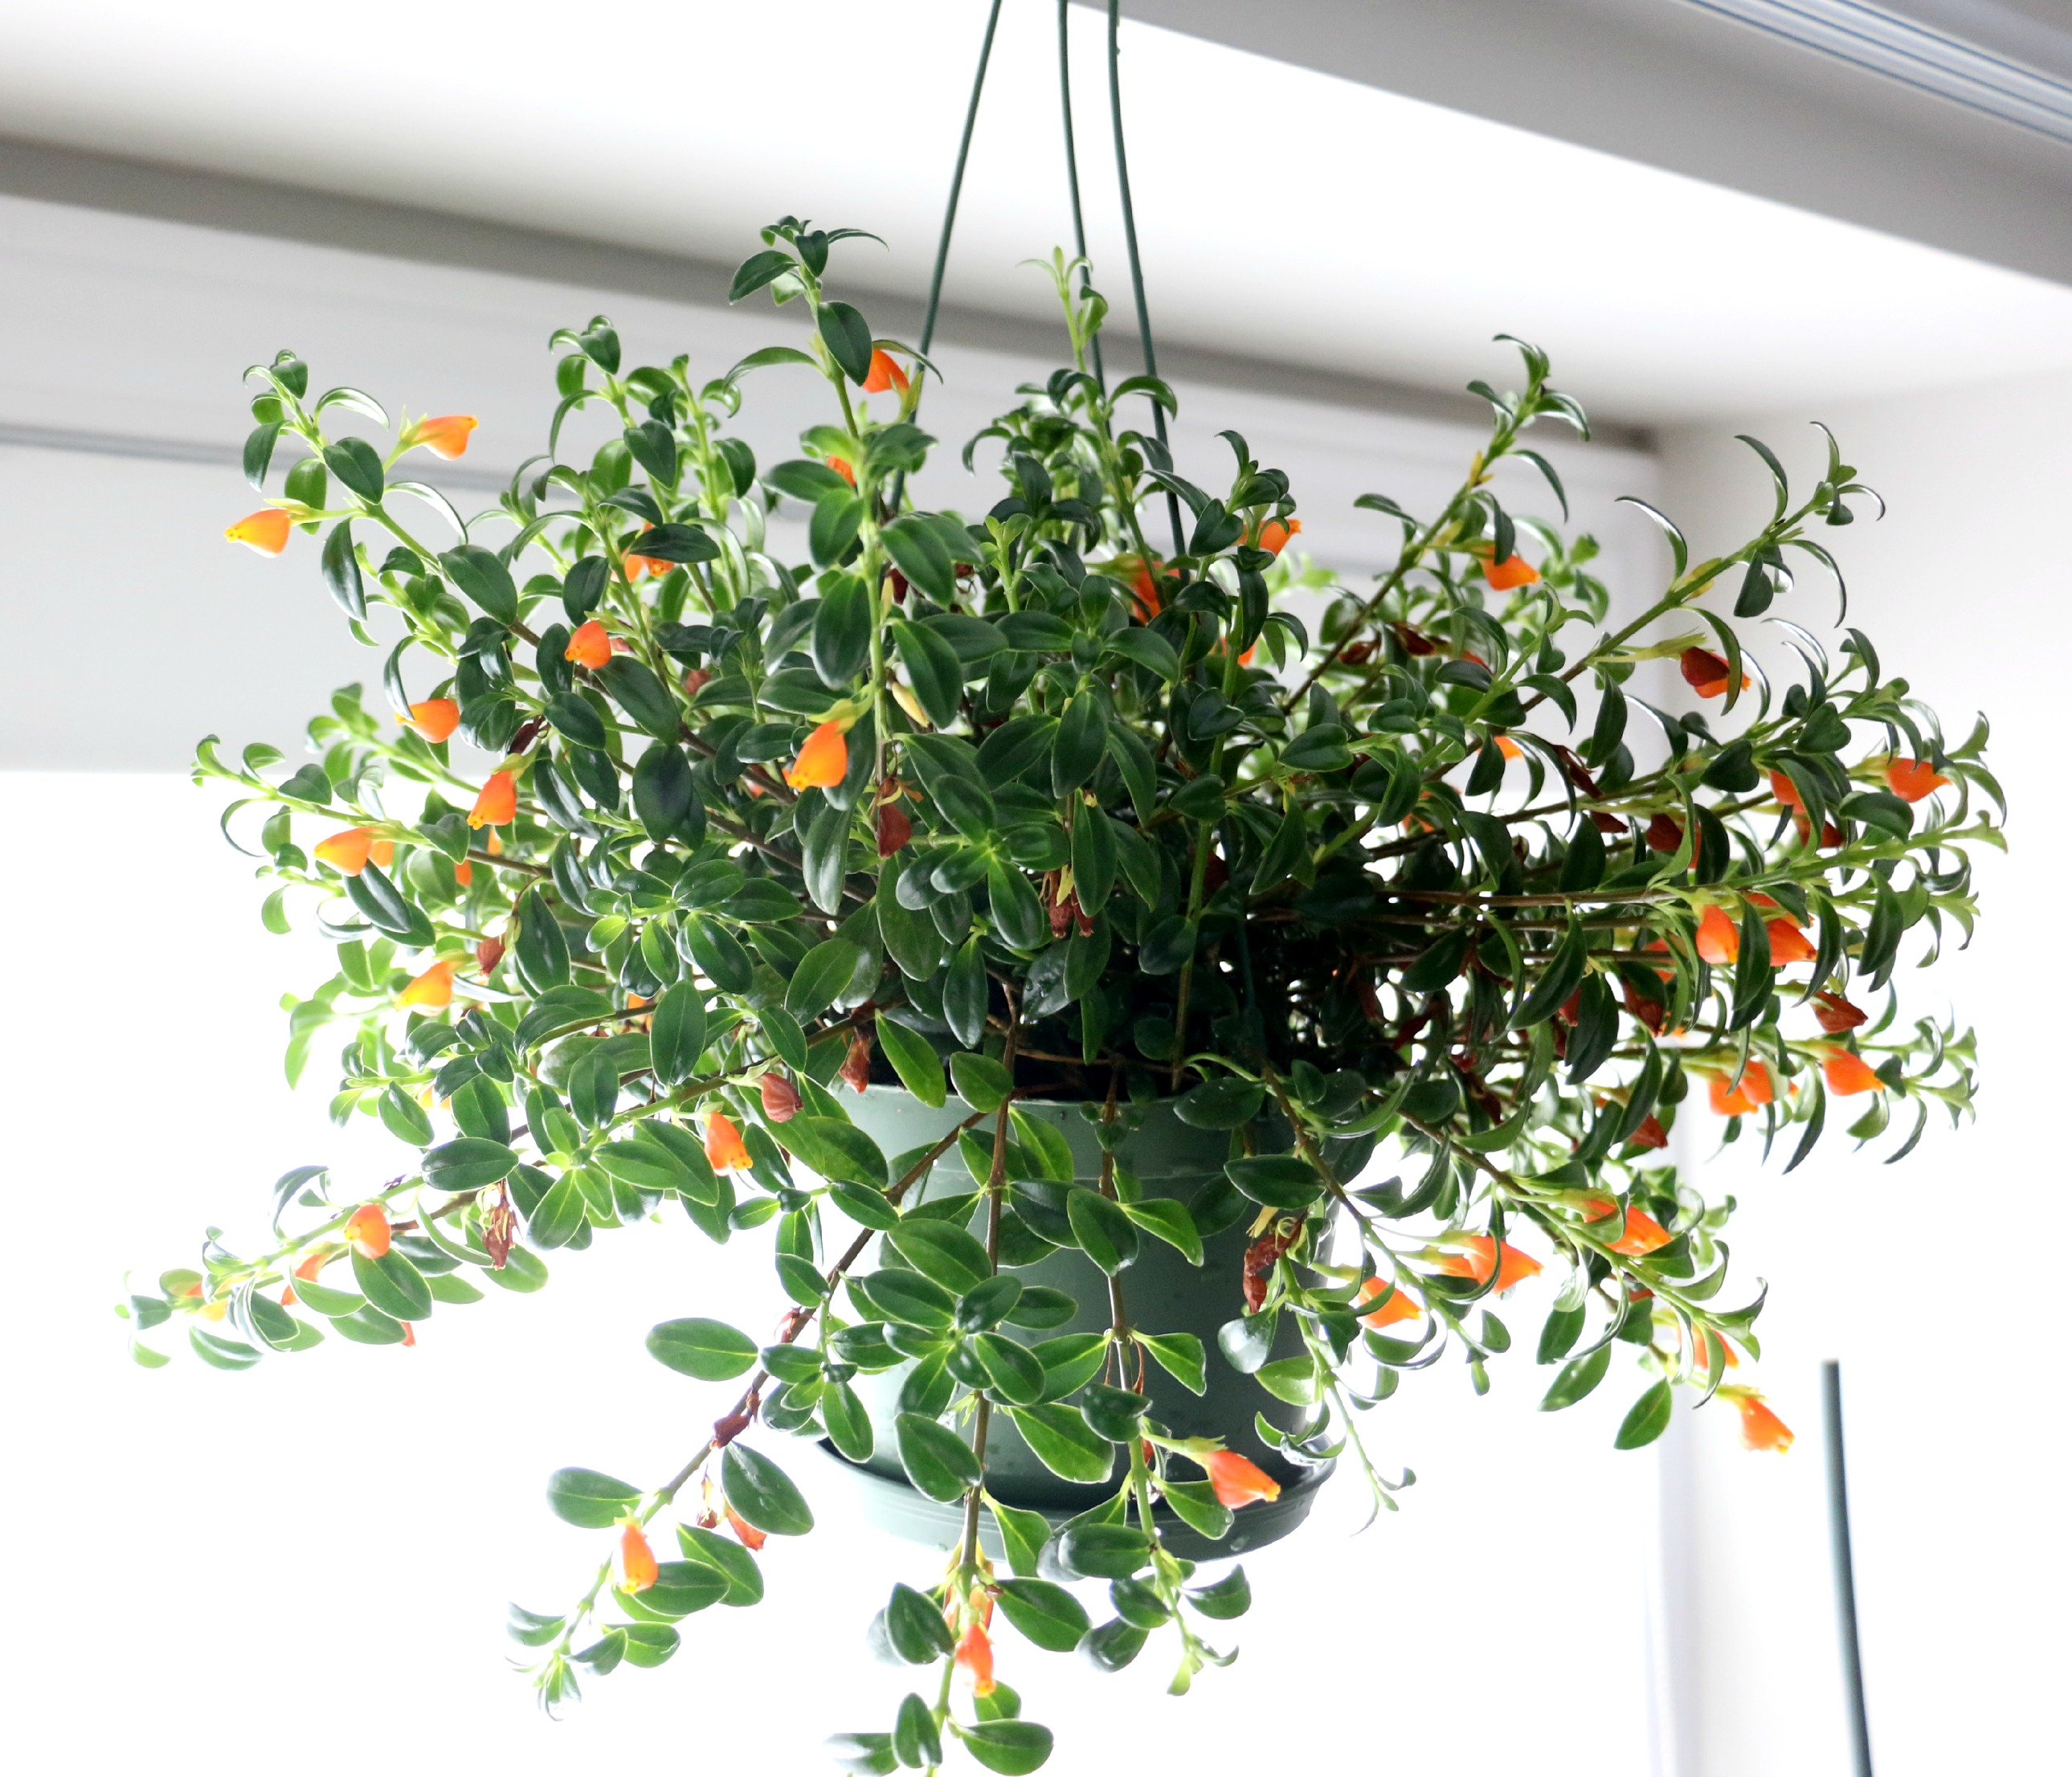 Green Obsessions » Blog Archive » Guppy, The Goldfish Plant